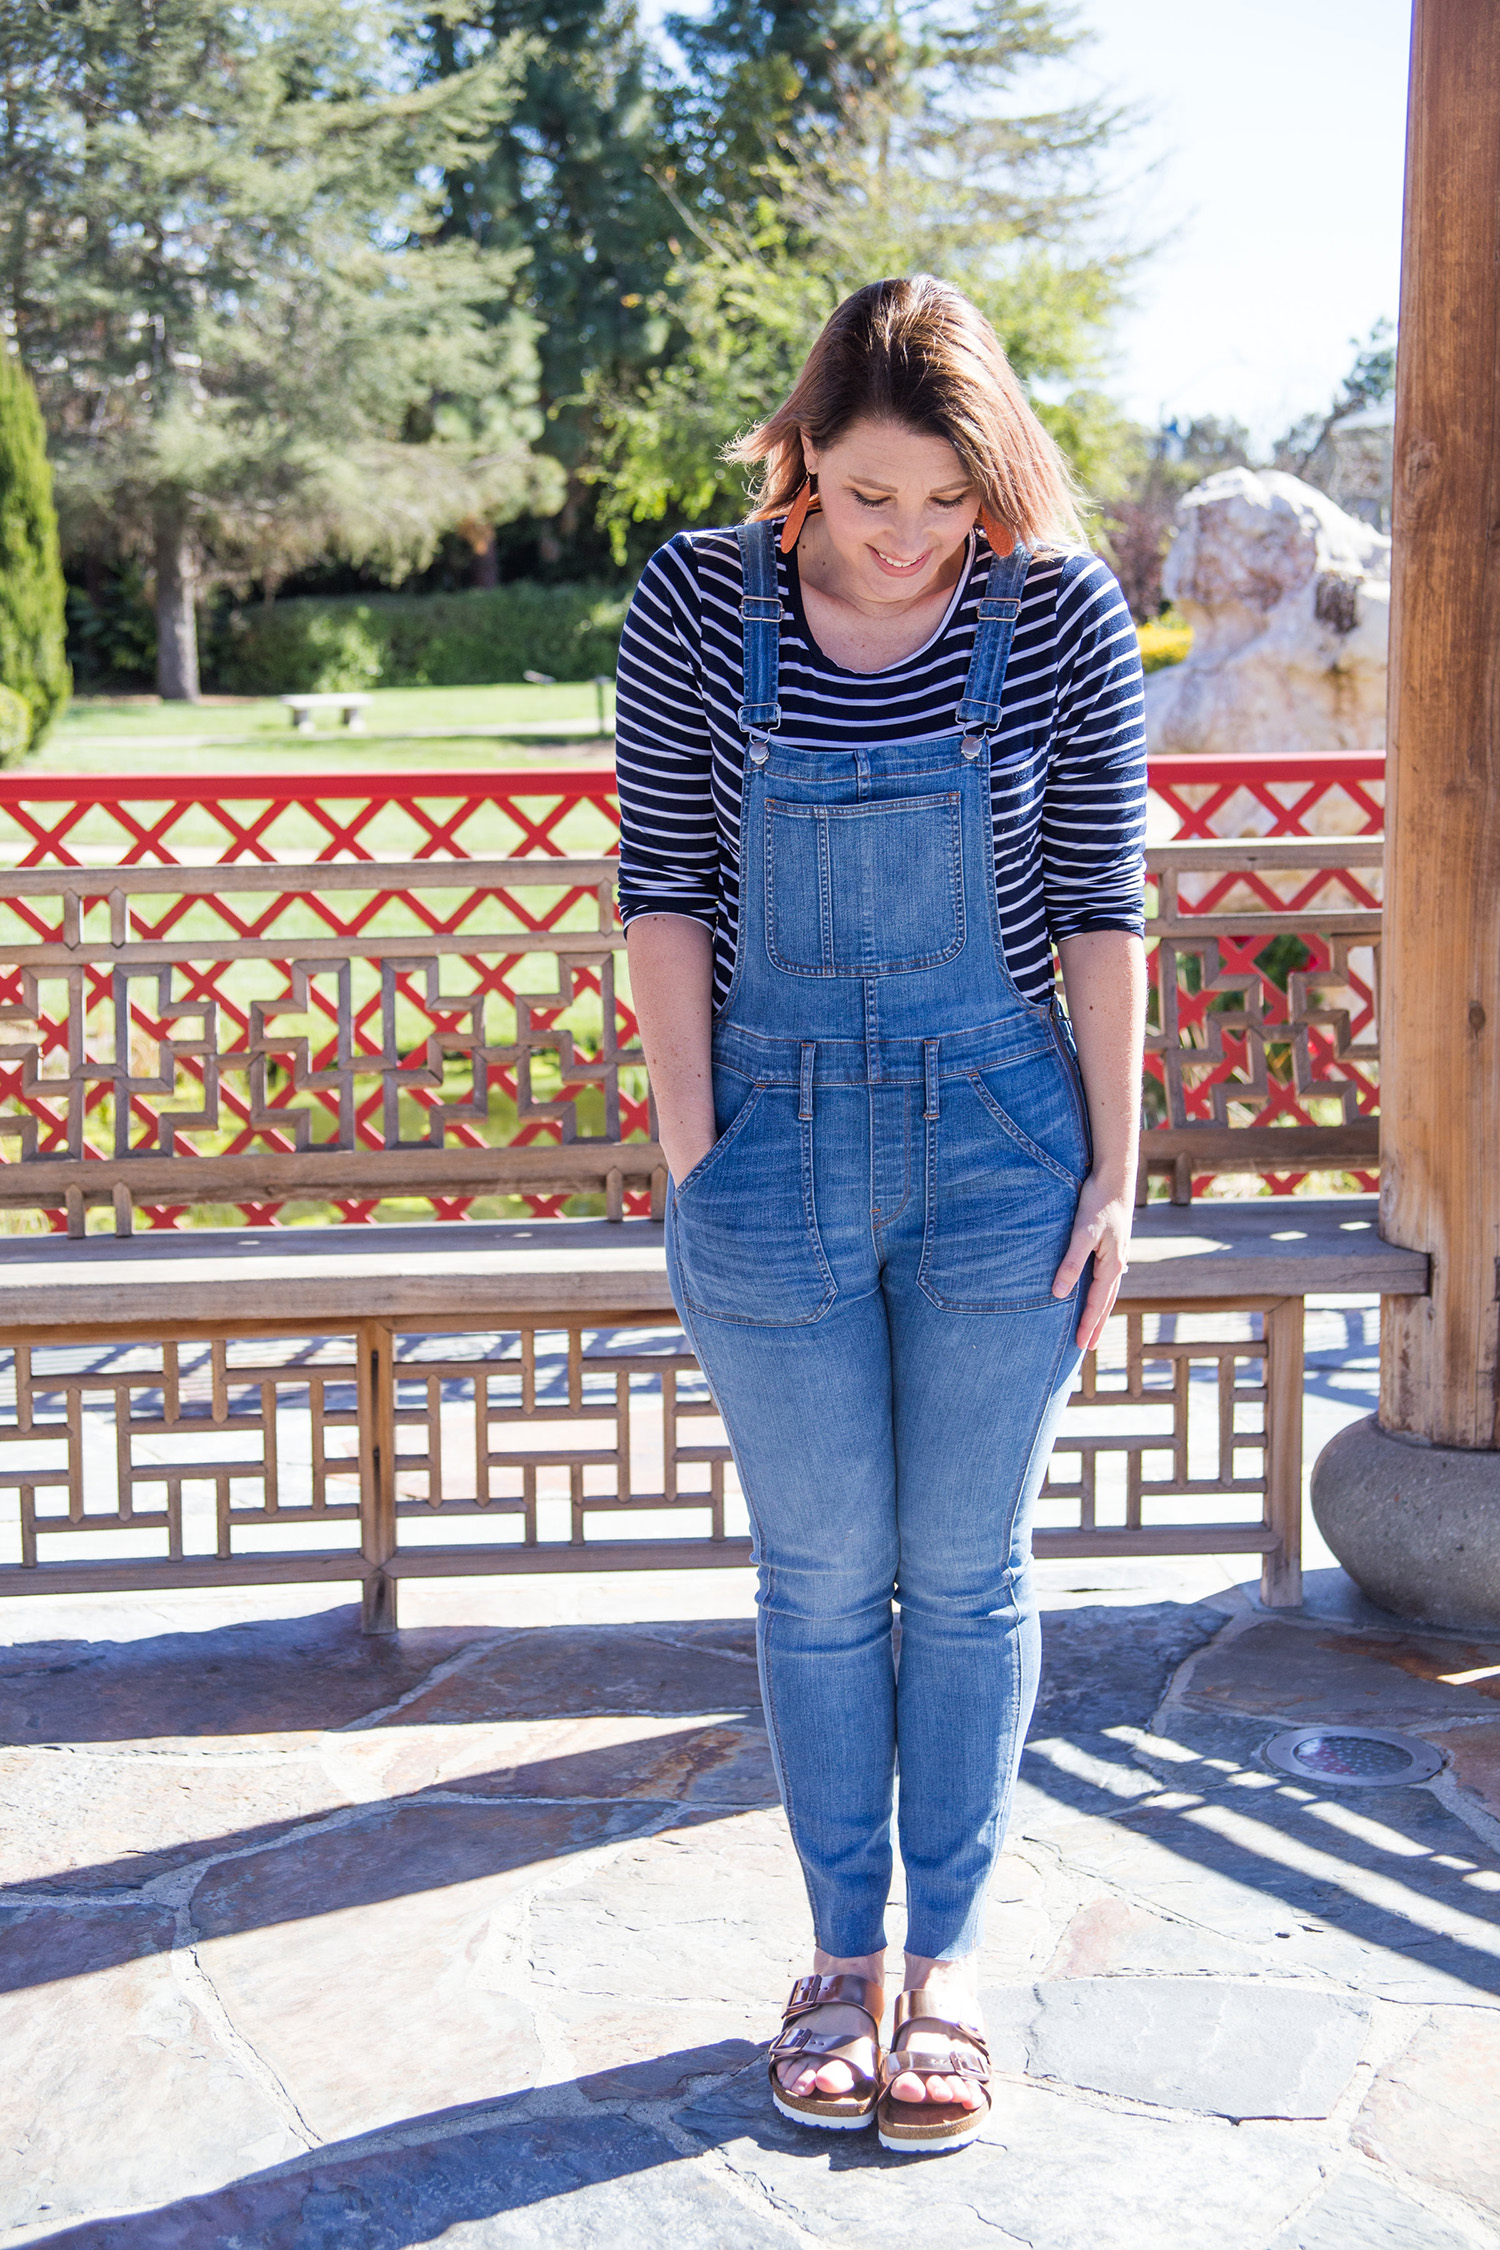 On the hunt for the best overalls for your body type? These overalls are a total bargain and under $50!